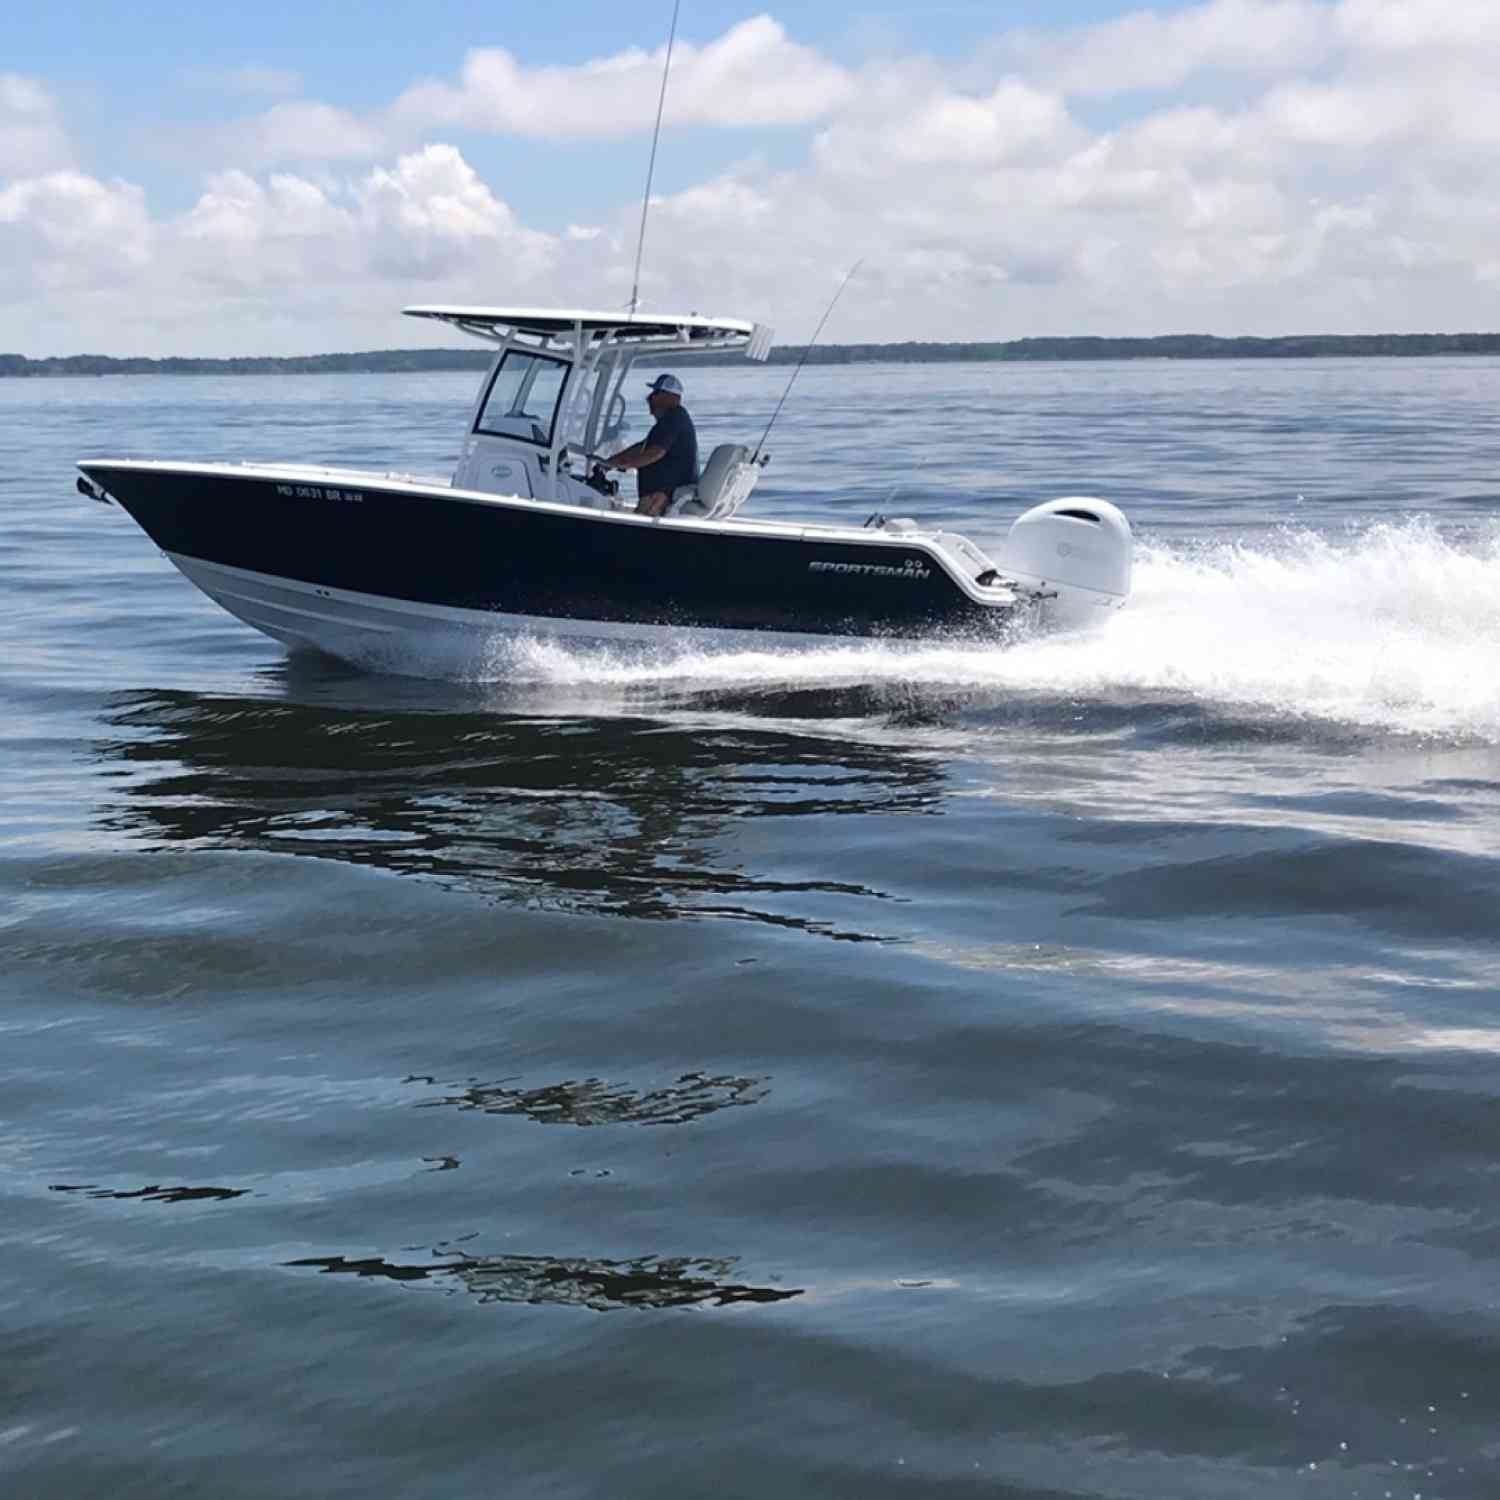 Title: Fathers day cruzing - On board their Sportsman Open 252 Center Console - Location: Kent island , Md.. Participating in the Photo Contest #SportsmanJuly2020